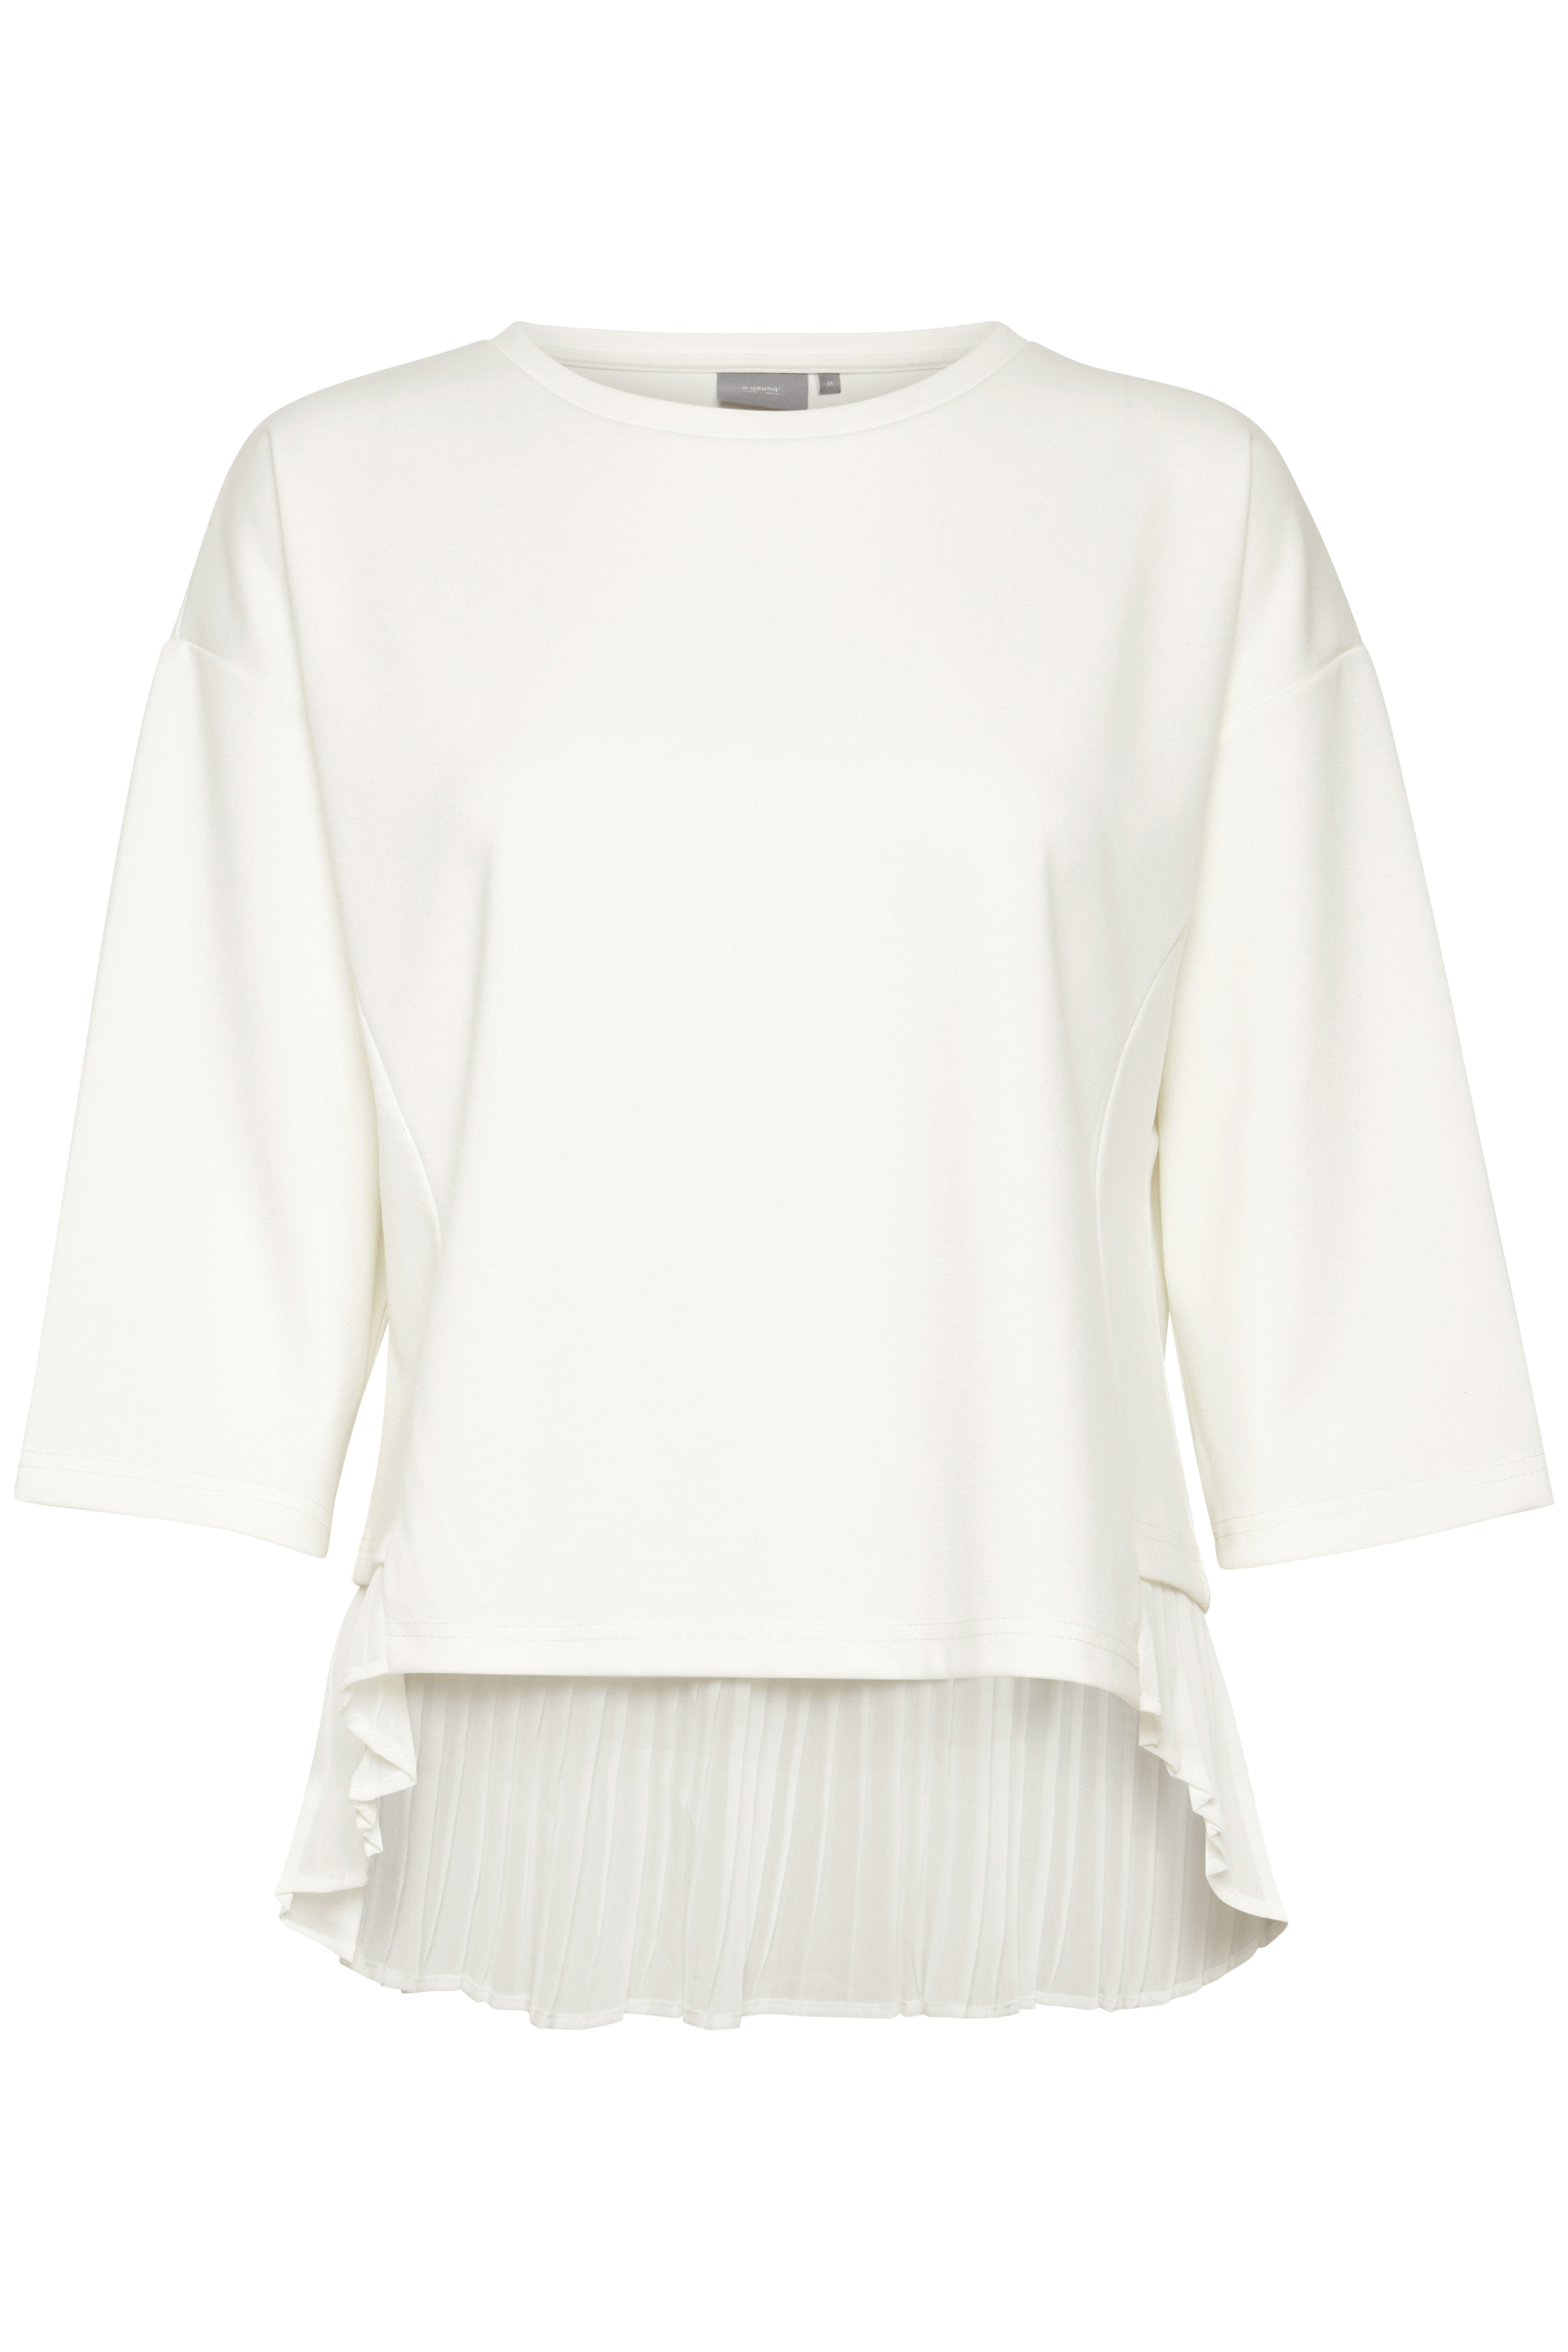 b.young Dame Blouse - Off-white